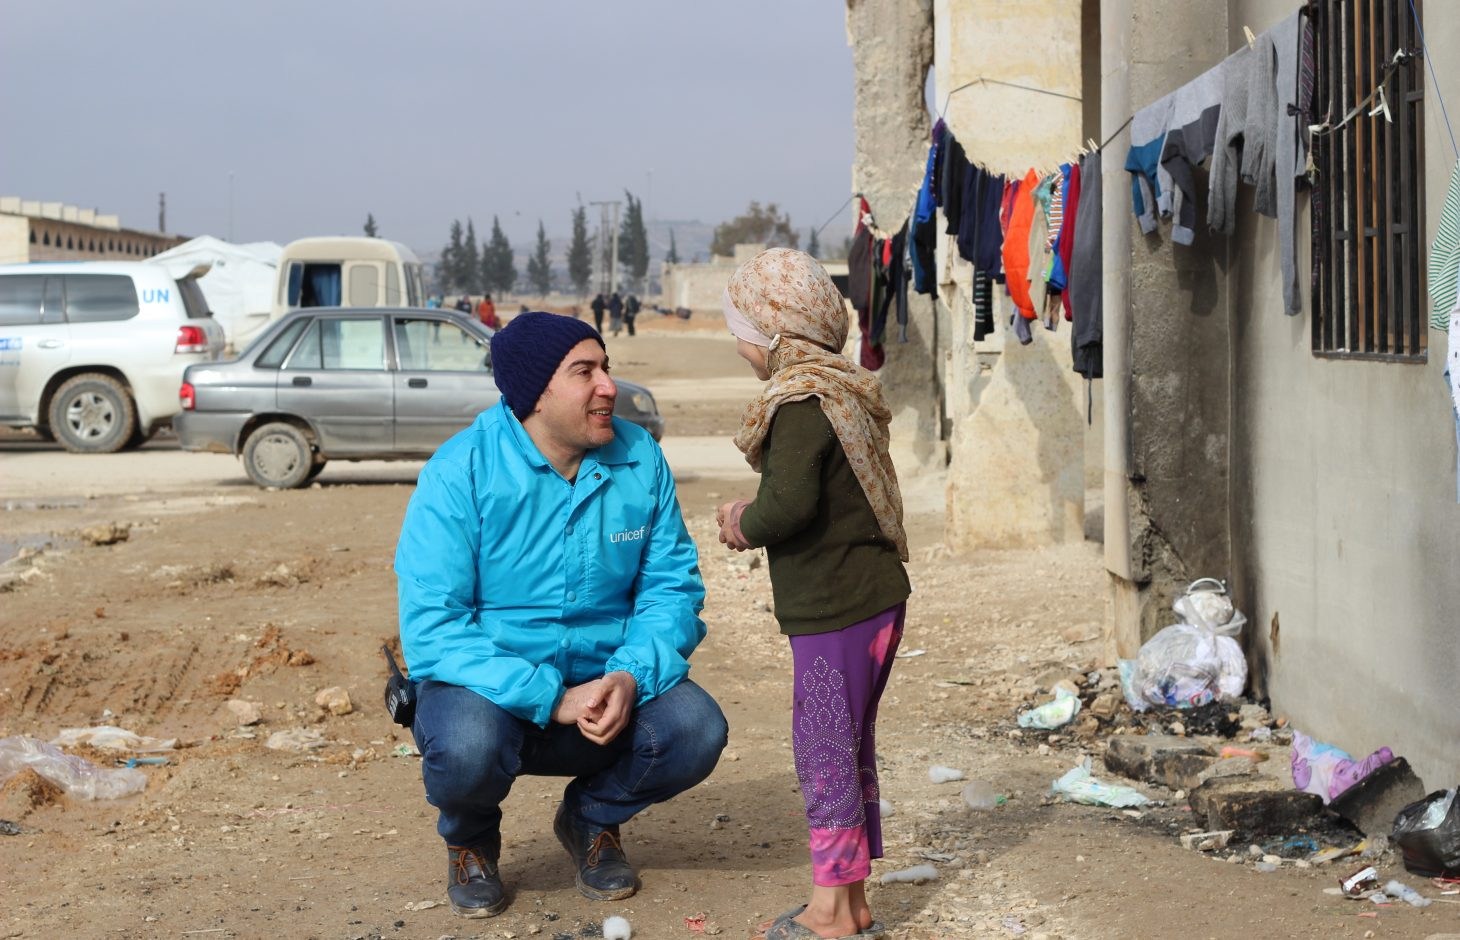 "January 2017, Boushra, 9, displaced from east Aleppo We met 9 year-old Boushra while she was waiting next to a clothesline near her new home, a former warehouse now housing over 5,000 people displaced from eastern Aleppo. ""I am waiting for my clothes to dry,"" says Boushra, who has been in Jibreen for two months after her home in east Aleppo was completely destroyed. ""When we fled our home, we couldn't bring anything with us."" Boushra's mother explains. ""All my children had one outfit only when we arrived here."" Boushra and her siblings were among 31,000 children who received winter clothes distributed by UNICEF in Aleppo.Some 31,5000 people are reported to have been displaced from and within eastern Aleppo City since 24 November. Temperatures are dropping quickly and heavy rainfall has made conditions even worse over the past few days. UNICEF is providing blankets and winter clothing, as well as access to safe water, essential medical care, including vaccinations and psychosocial support for children who have lived through such horrors.In Jibreen, to the east of Aleppo City, children and their families displaced by recent fighting in eastern Aleppo take shelter in a large warehouse in an area under Government control. Some 8,000 people are sheltering there.In Hanano, in east Aleppo City was the first district to be retaken by Government forces on 27 November. People are now moving back to the area as the frontline of fighting has moved further away. This includes families returning to their homes, as well as displaced families from other areas of east Aleppo."